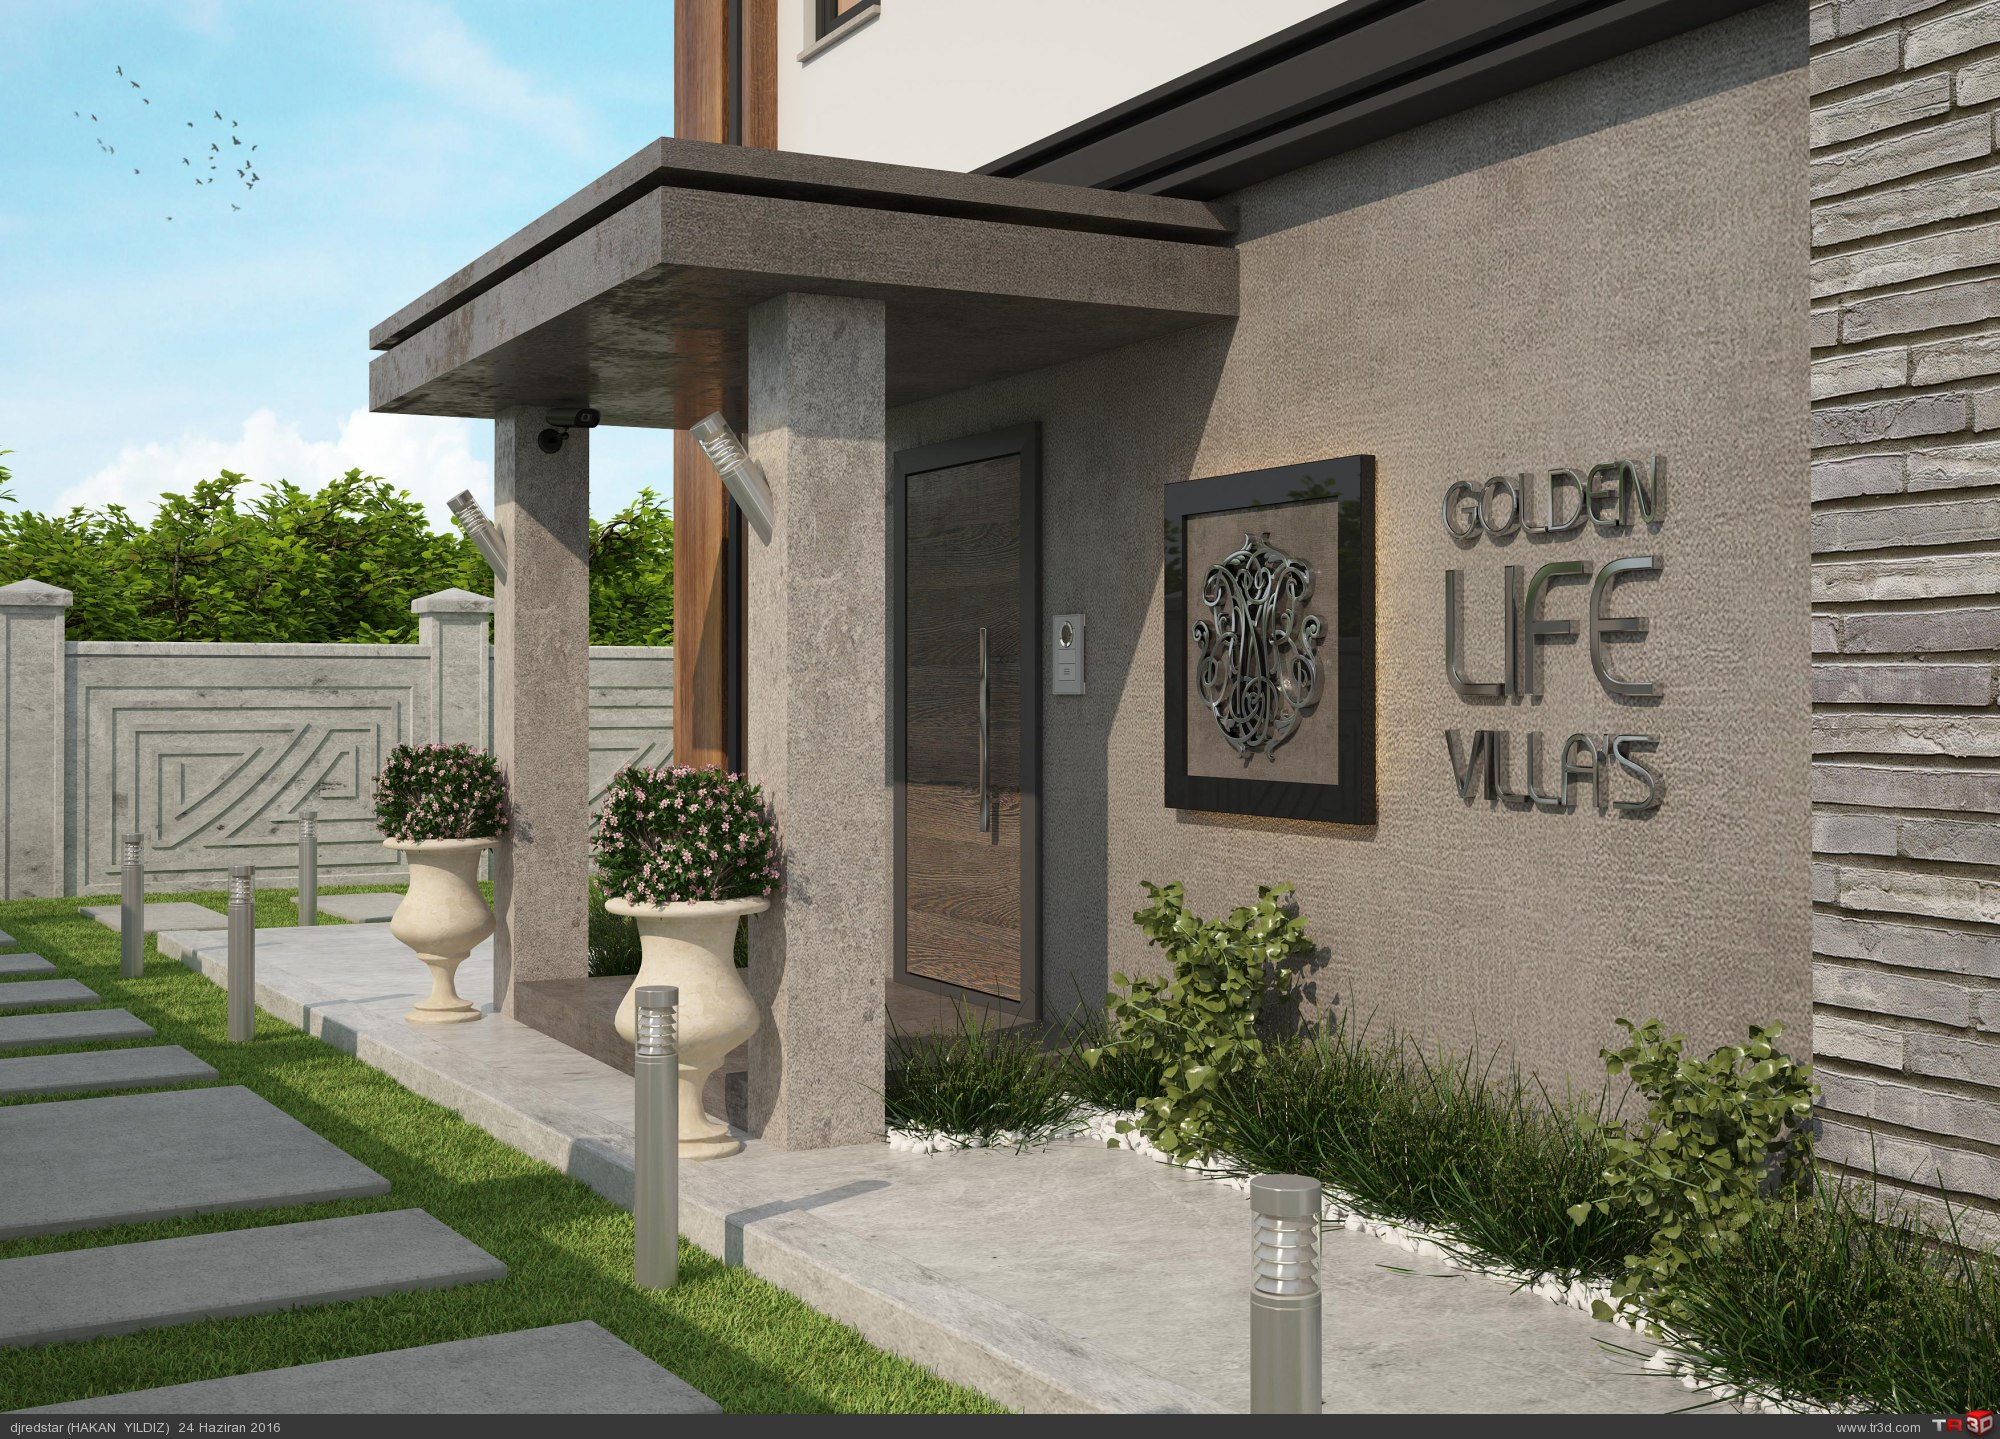 Golden Life Villa`s